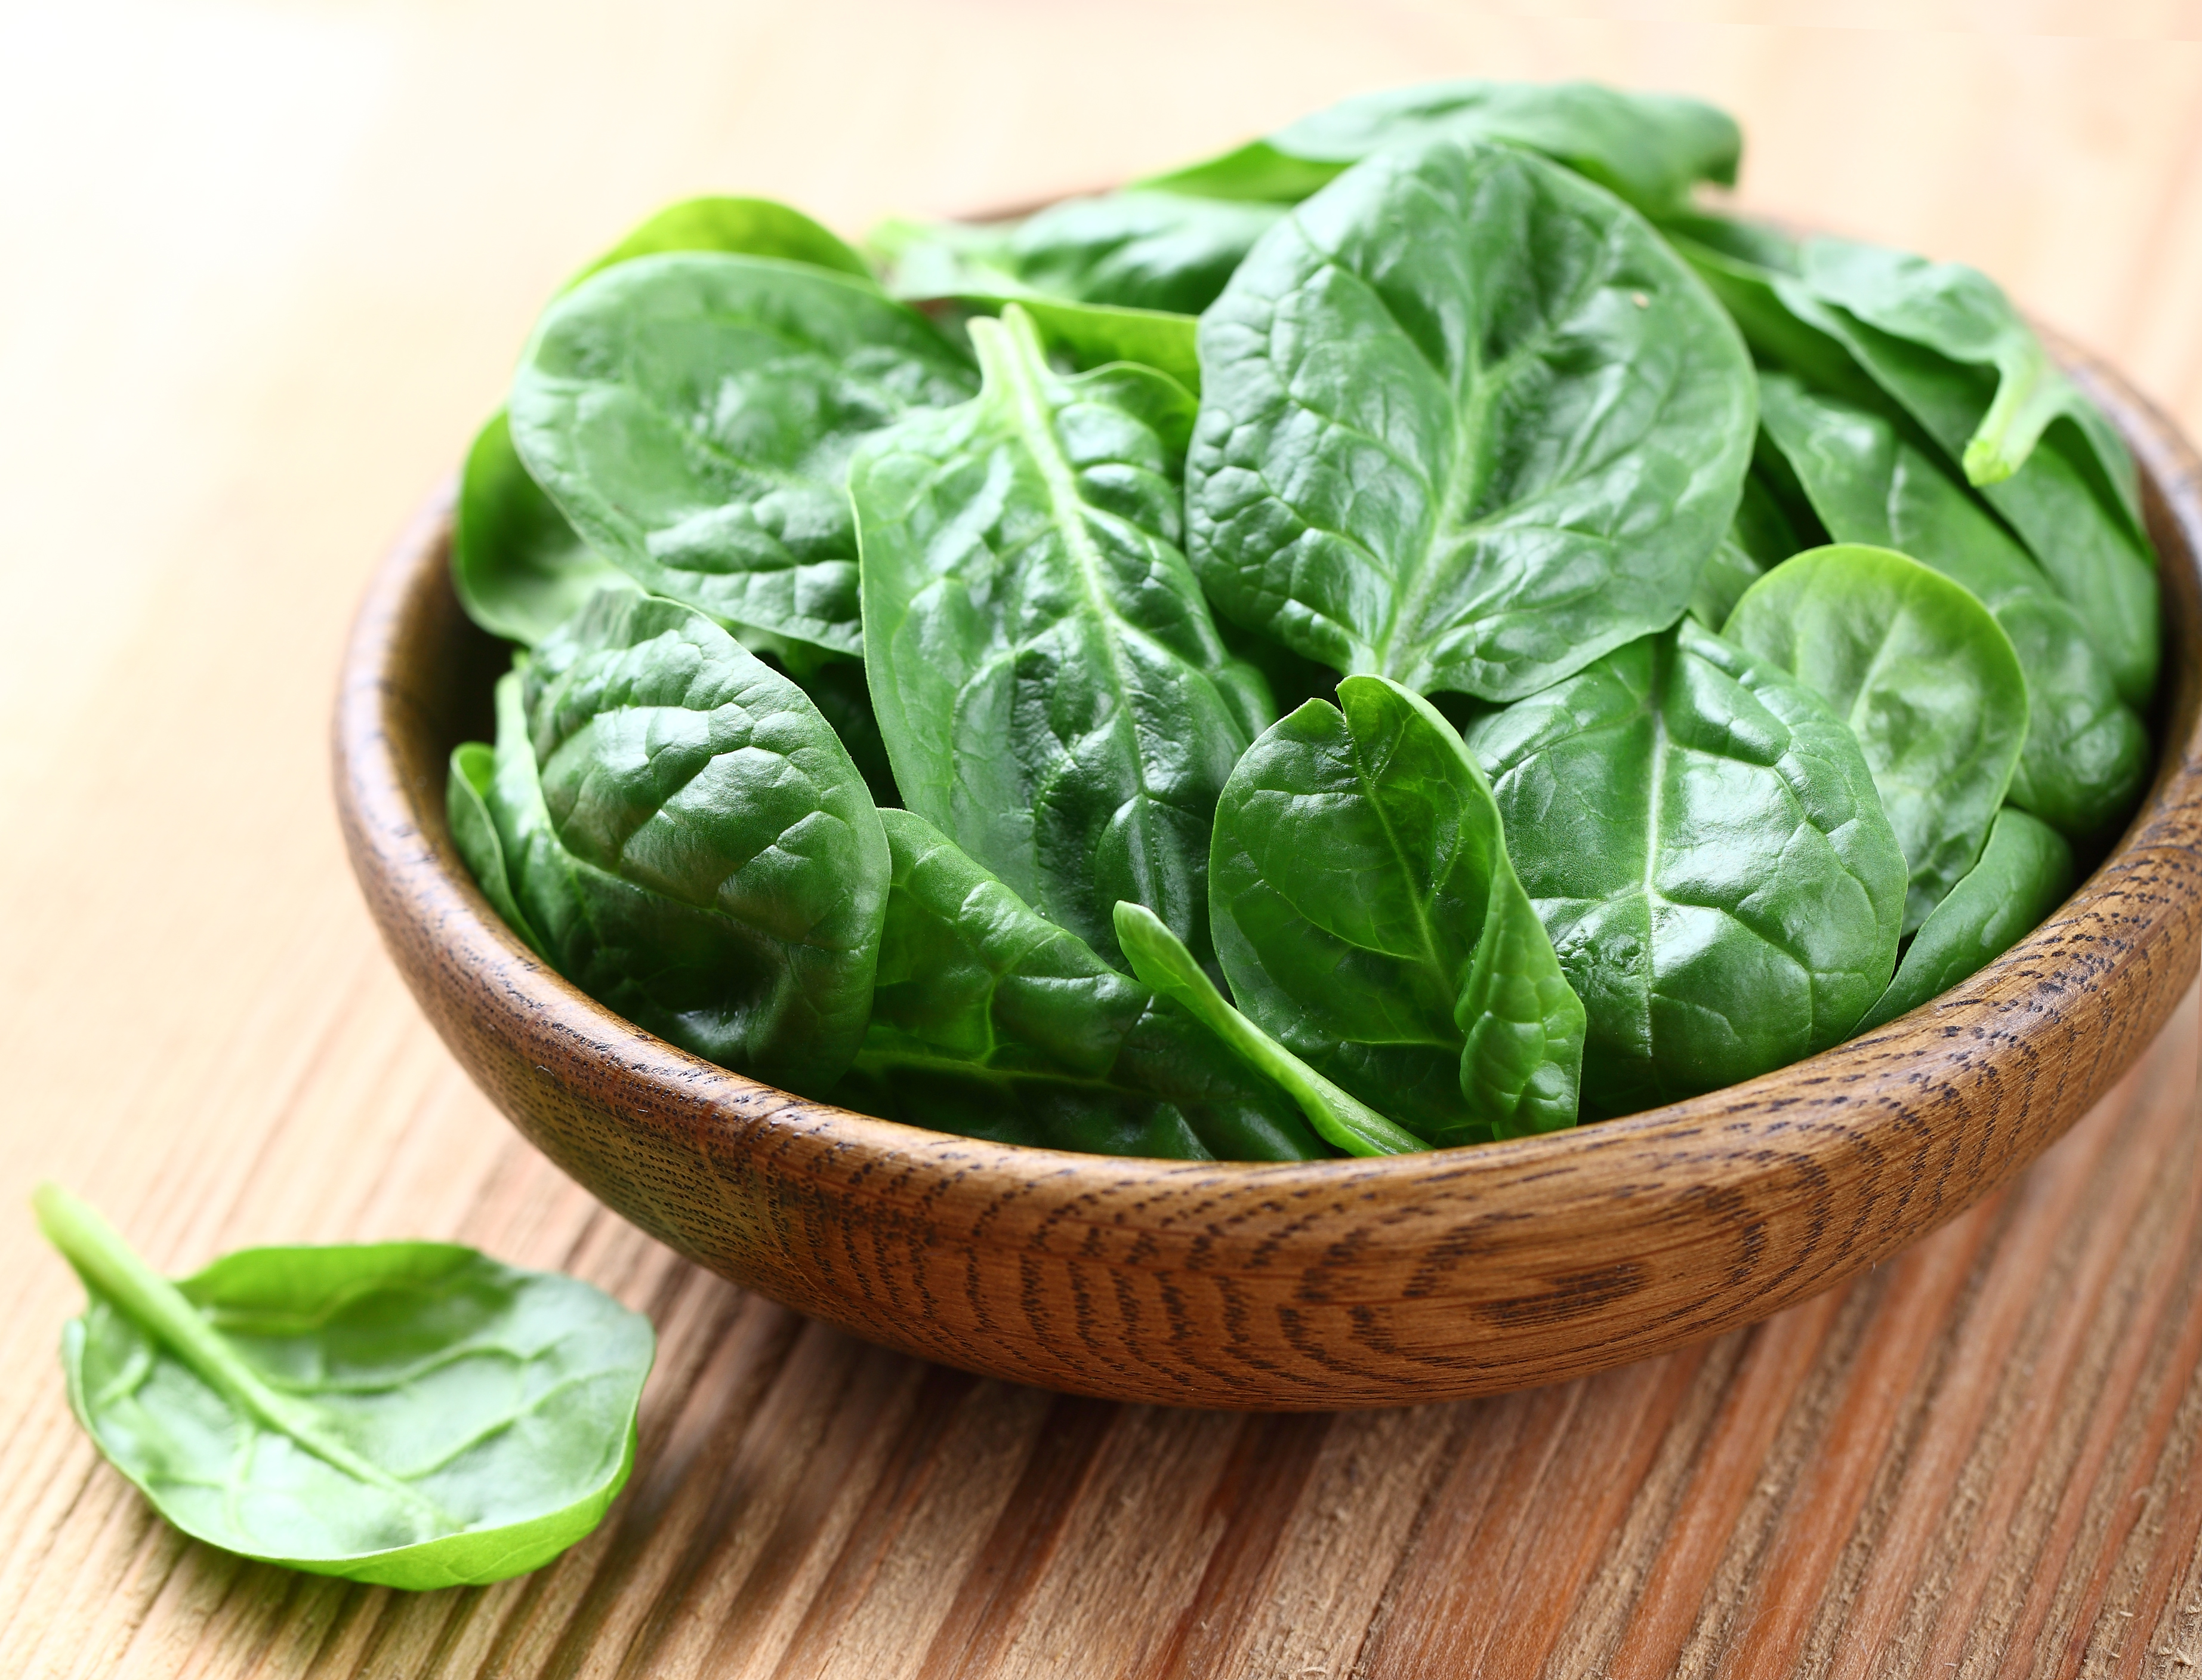 Food Facts: Spinach